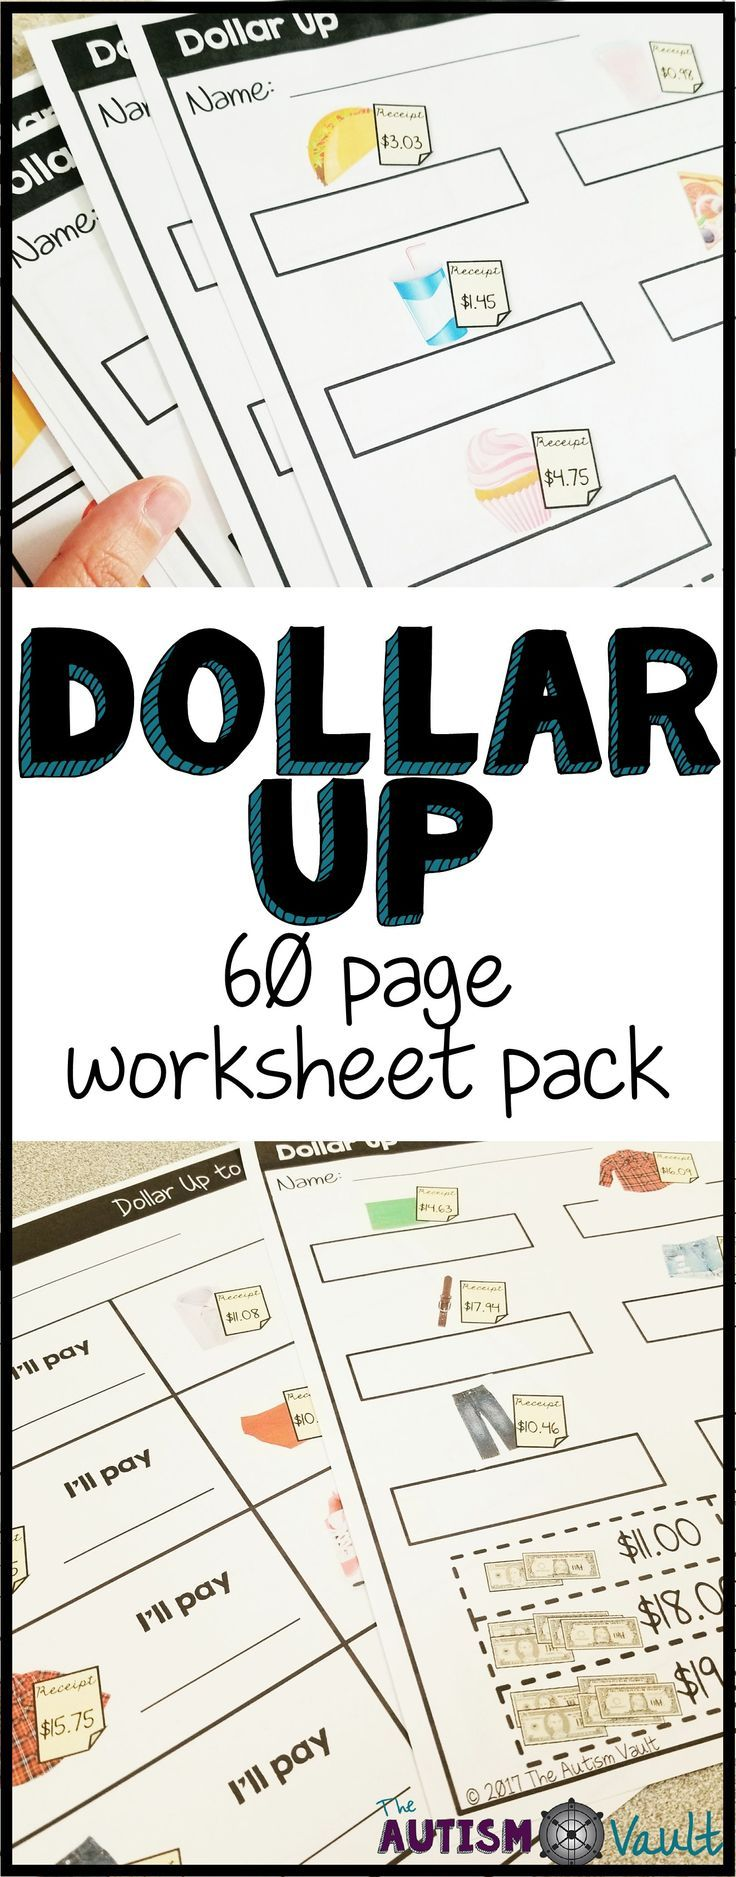 Have your student practice their skills of rounding up to the nearest dollar with the Dollar Up Worksheet Pack by The Autism Vault. There are four levels of worksheets, and three different types of worksheets for each level. If your secondary special education students are working on functional money math skills, this is for you!